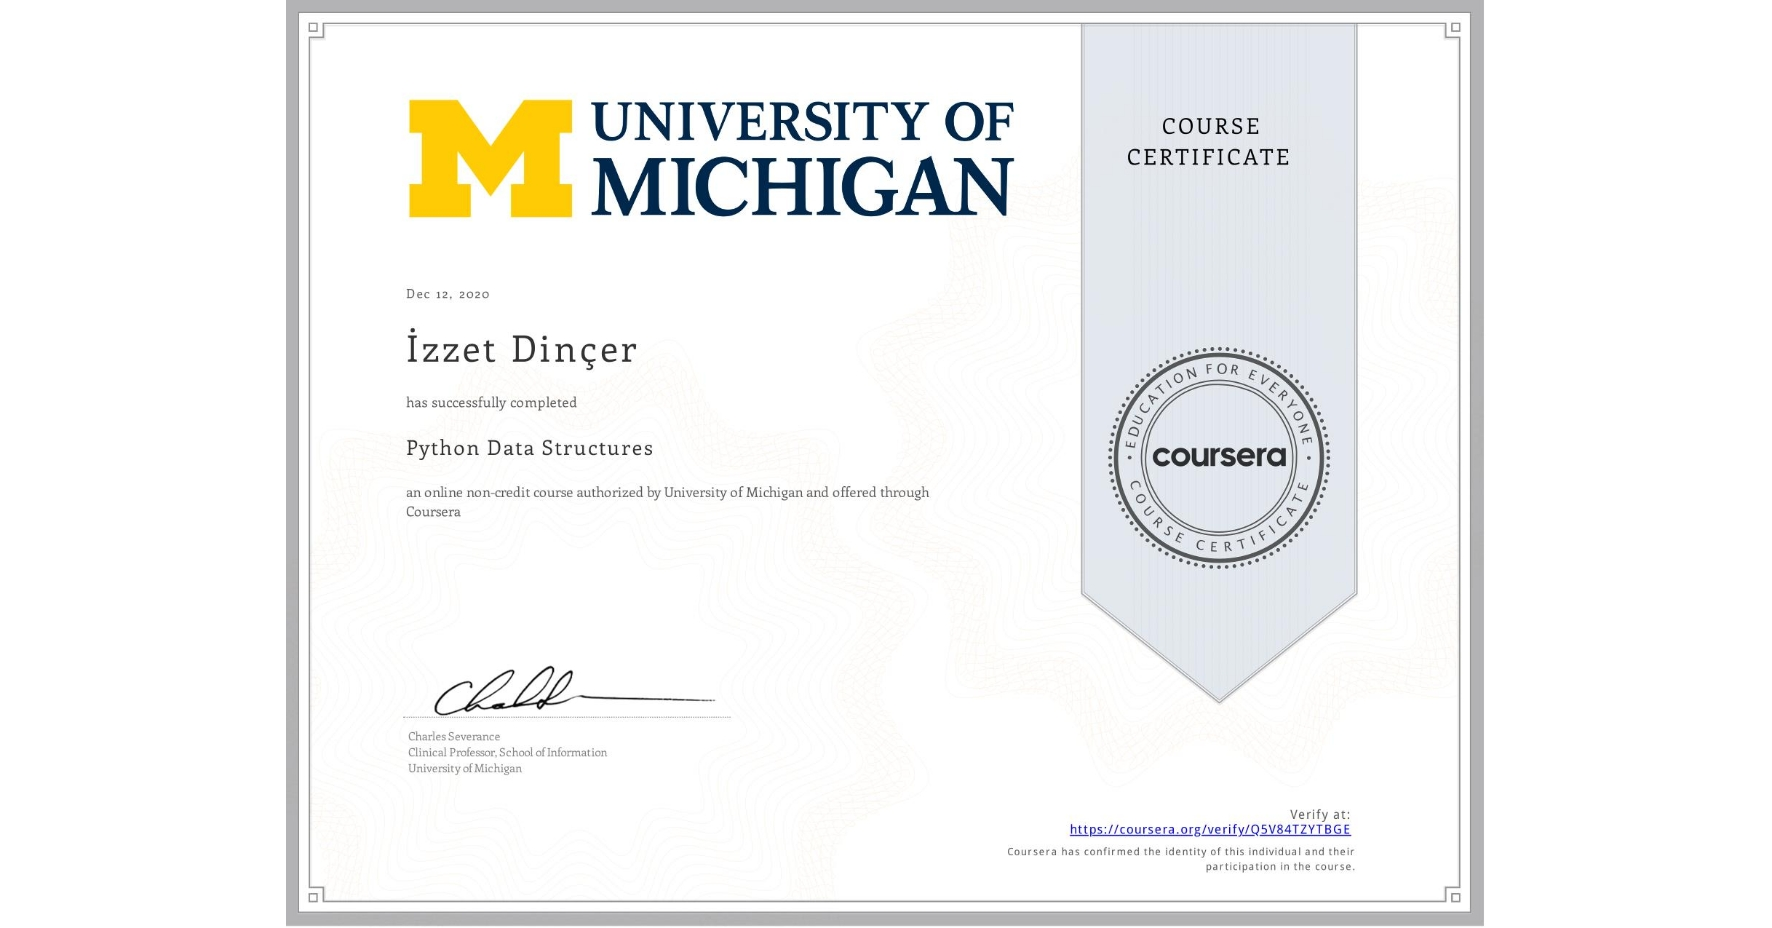 View certificate for İzzet Dinçer, Python Data Structures, an online non-credit course authorized by University of Michigan and offered through Coursera